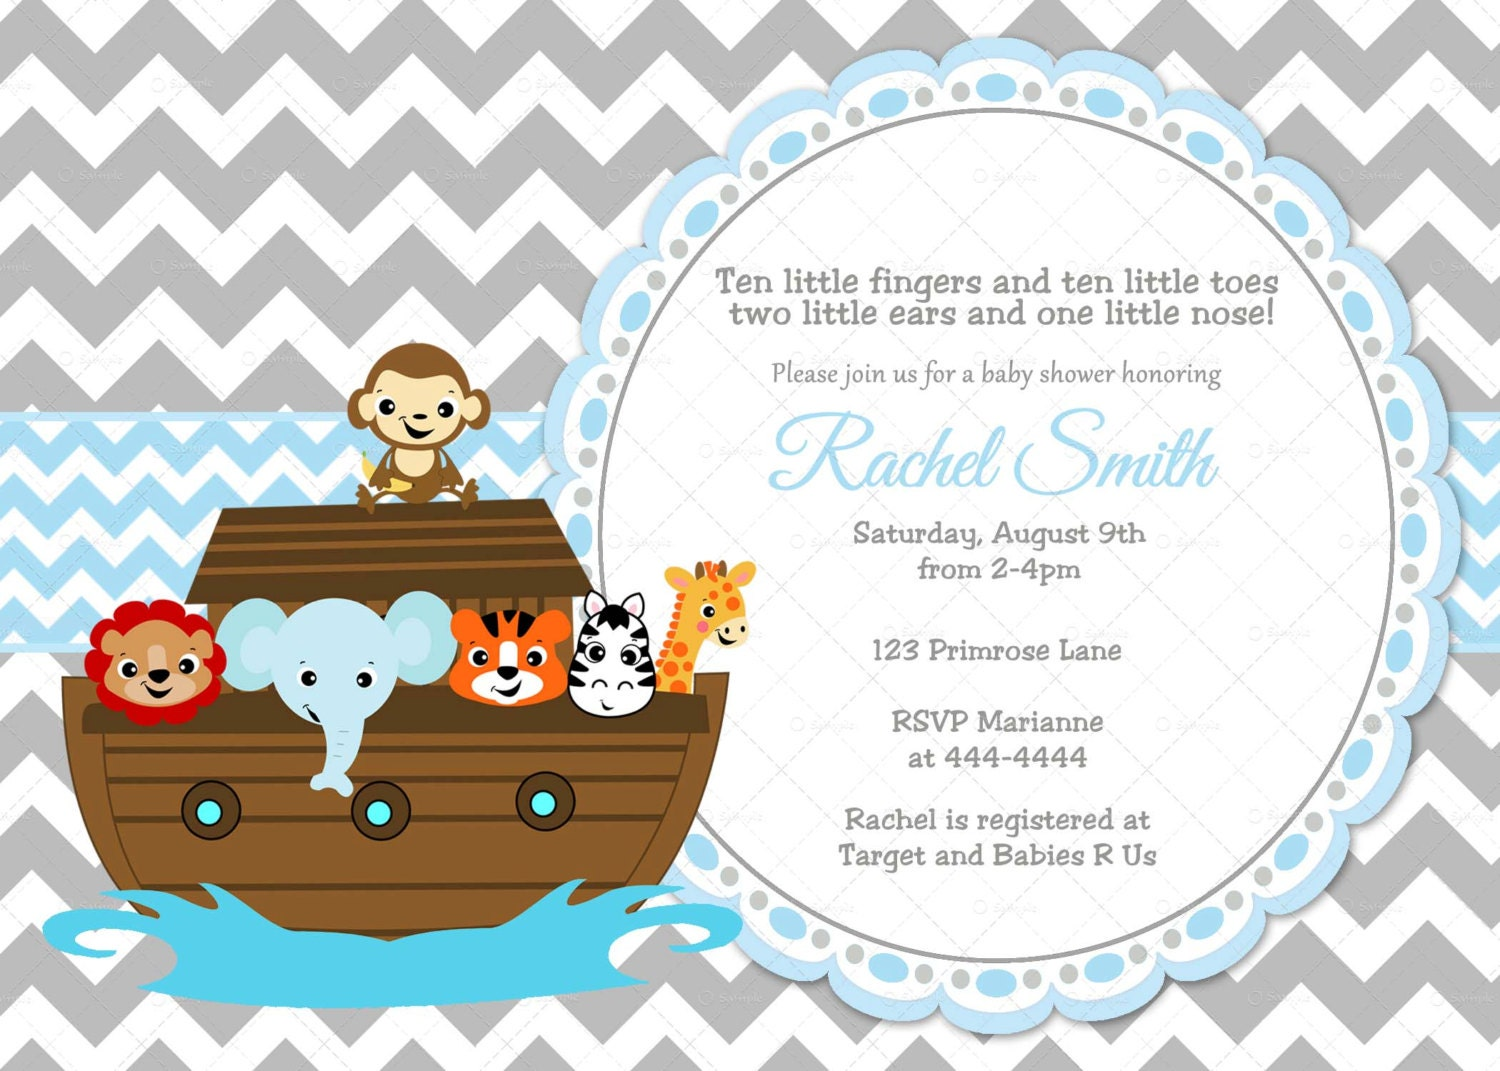 Noahs Ark Baby Shower Invitations is luxury invitation example